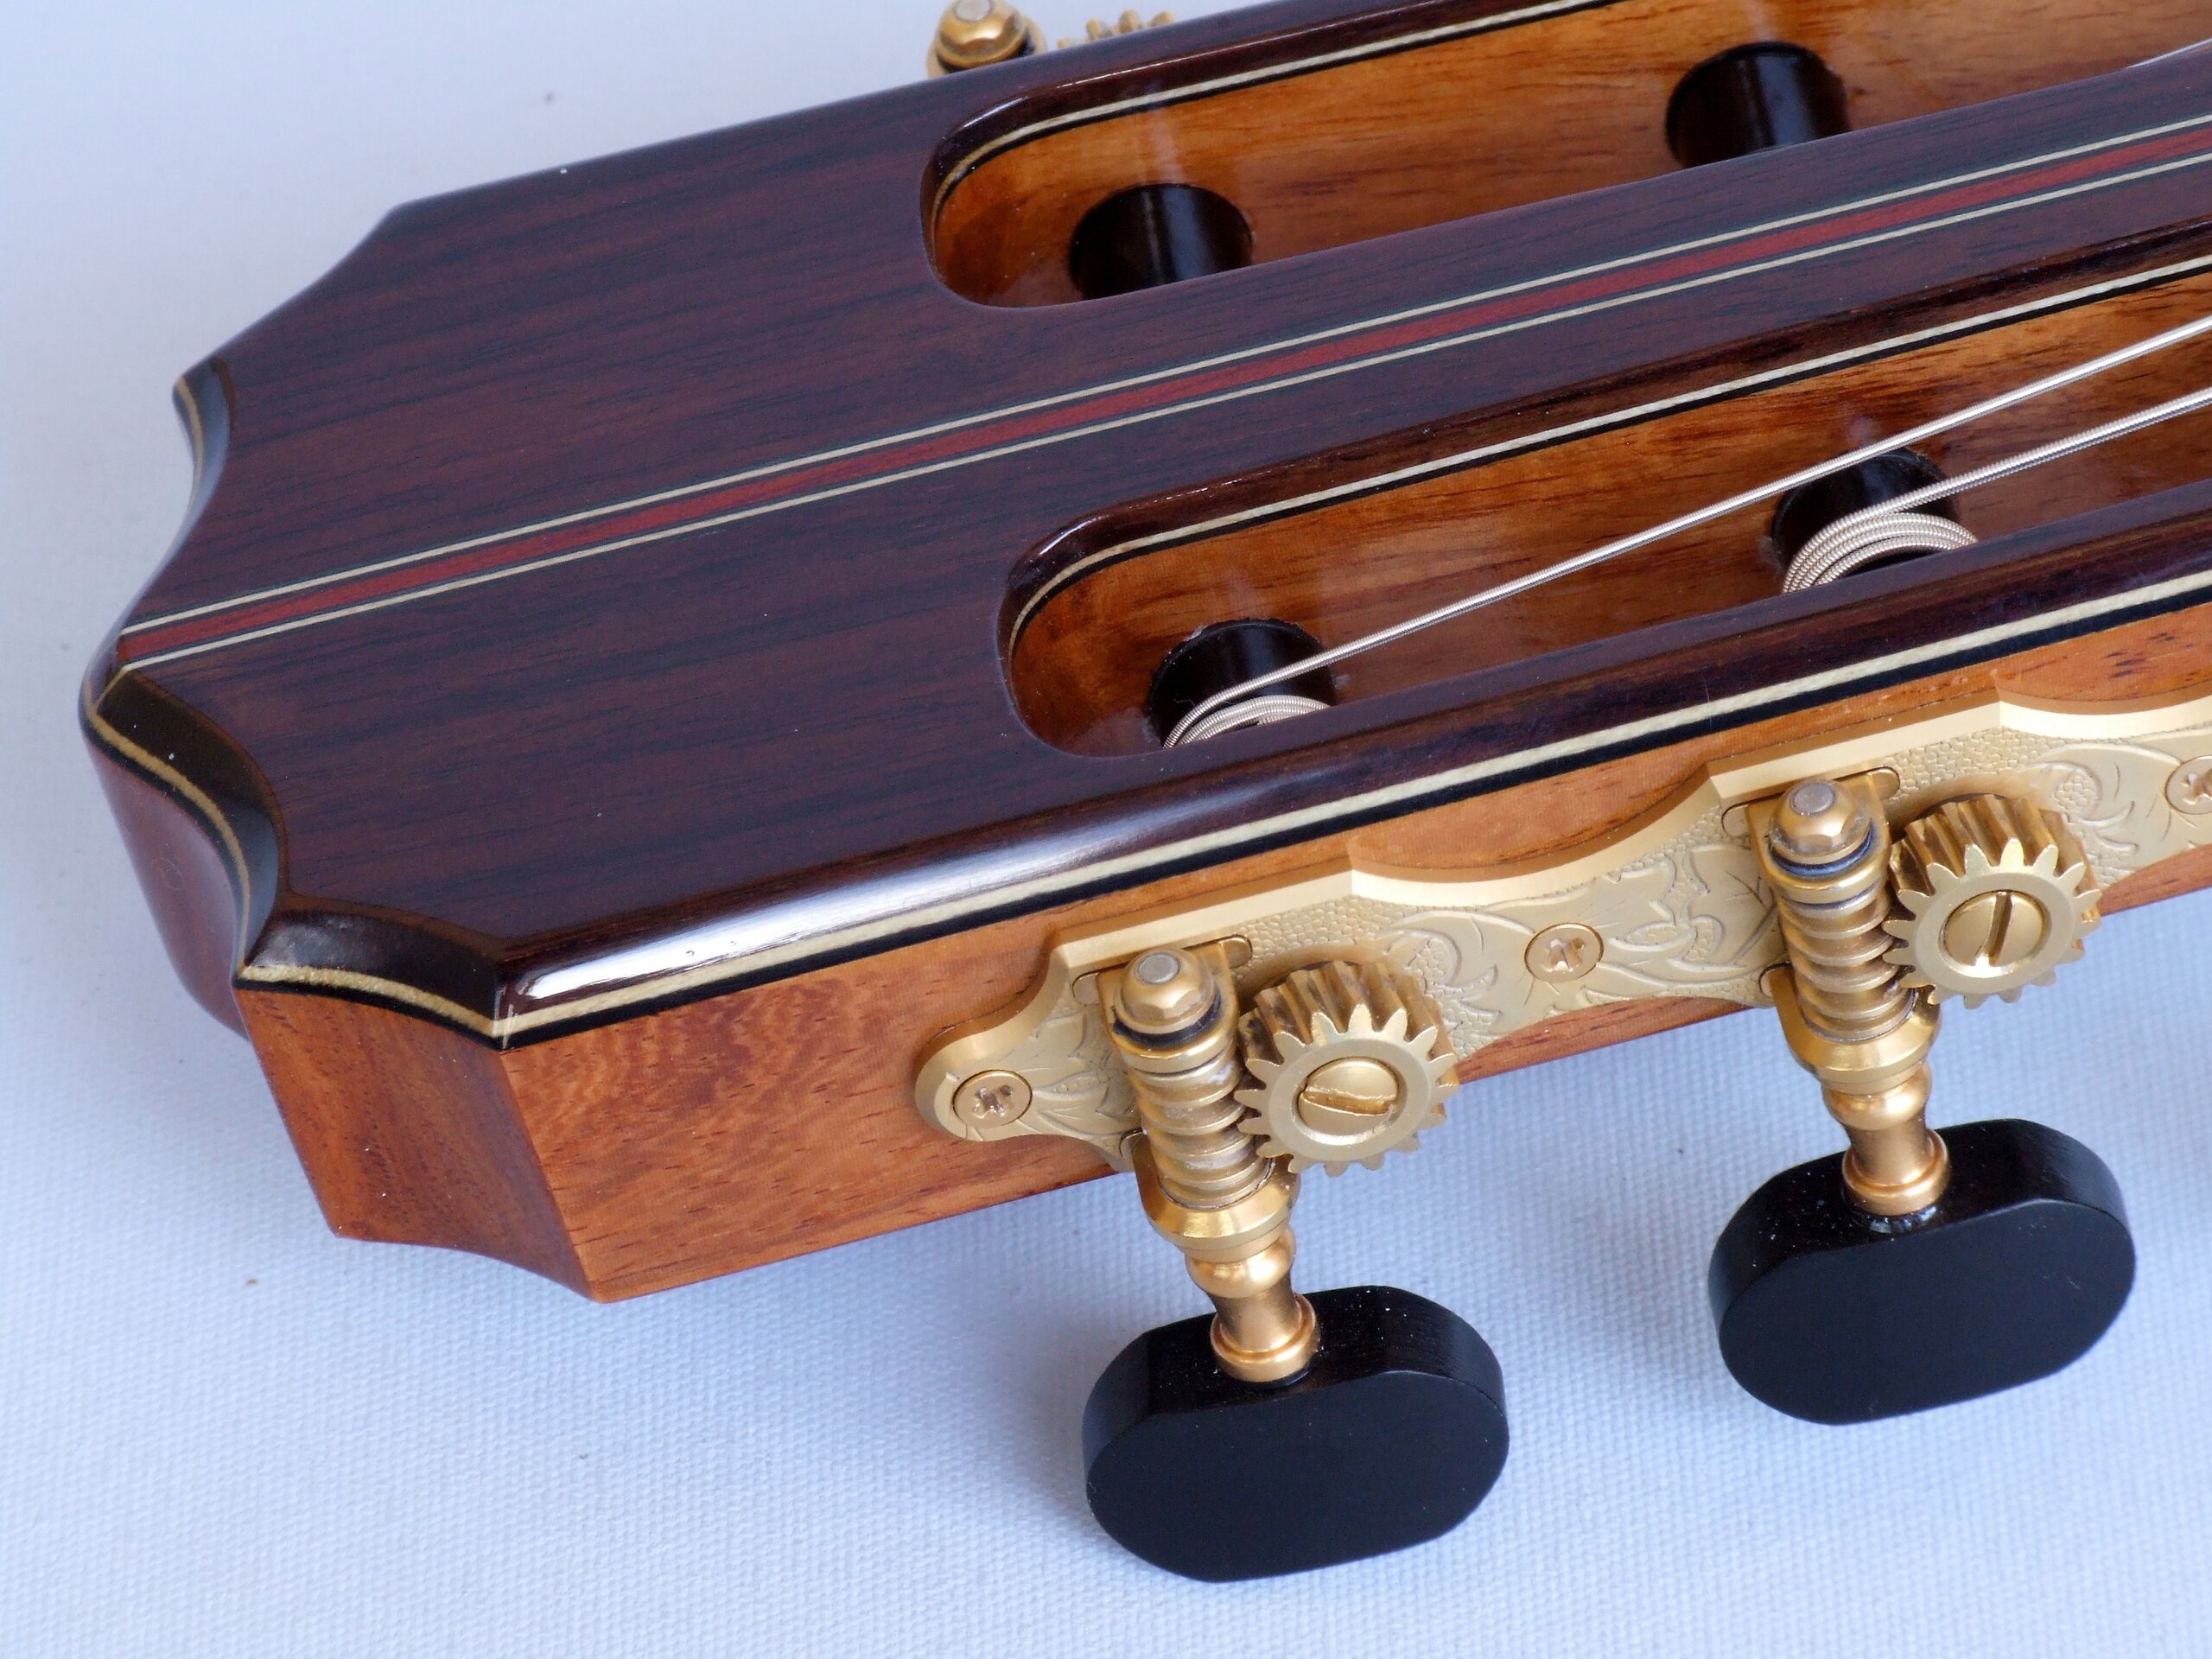 Detail of Gotoh tuners with ebony buttons on a classical guitar